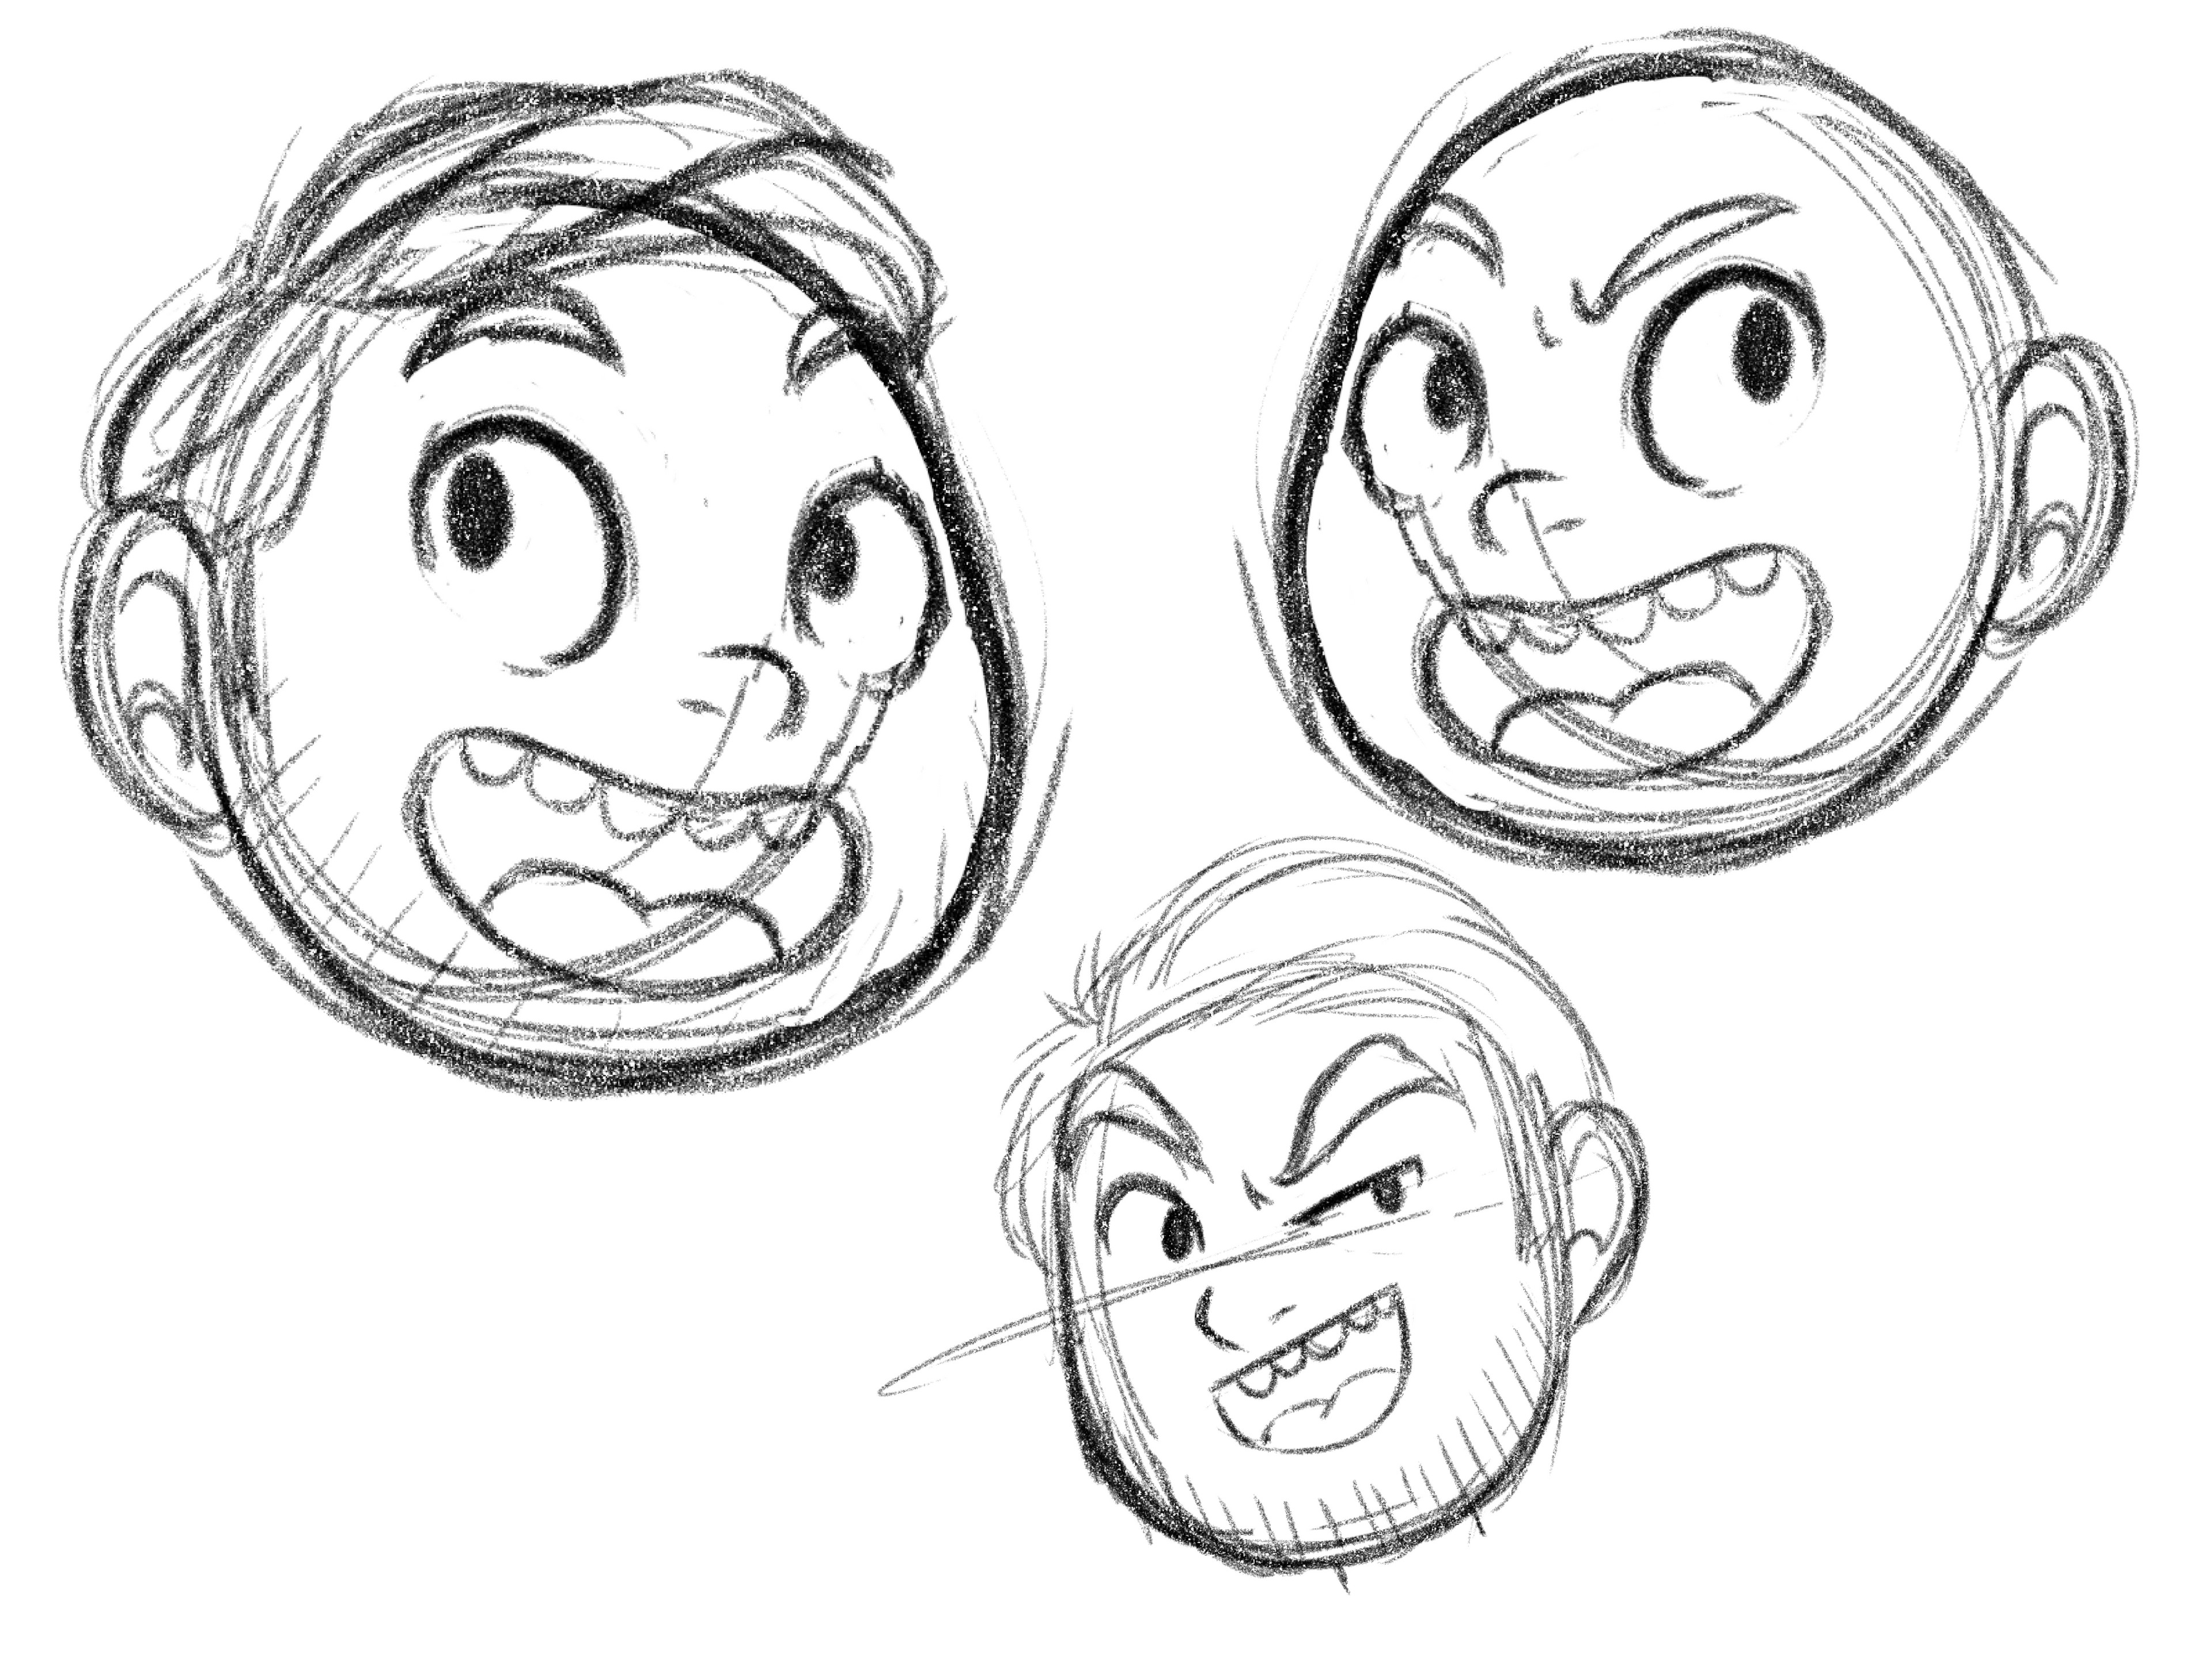 A few sketches from the early design process for the head icon.